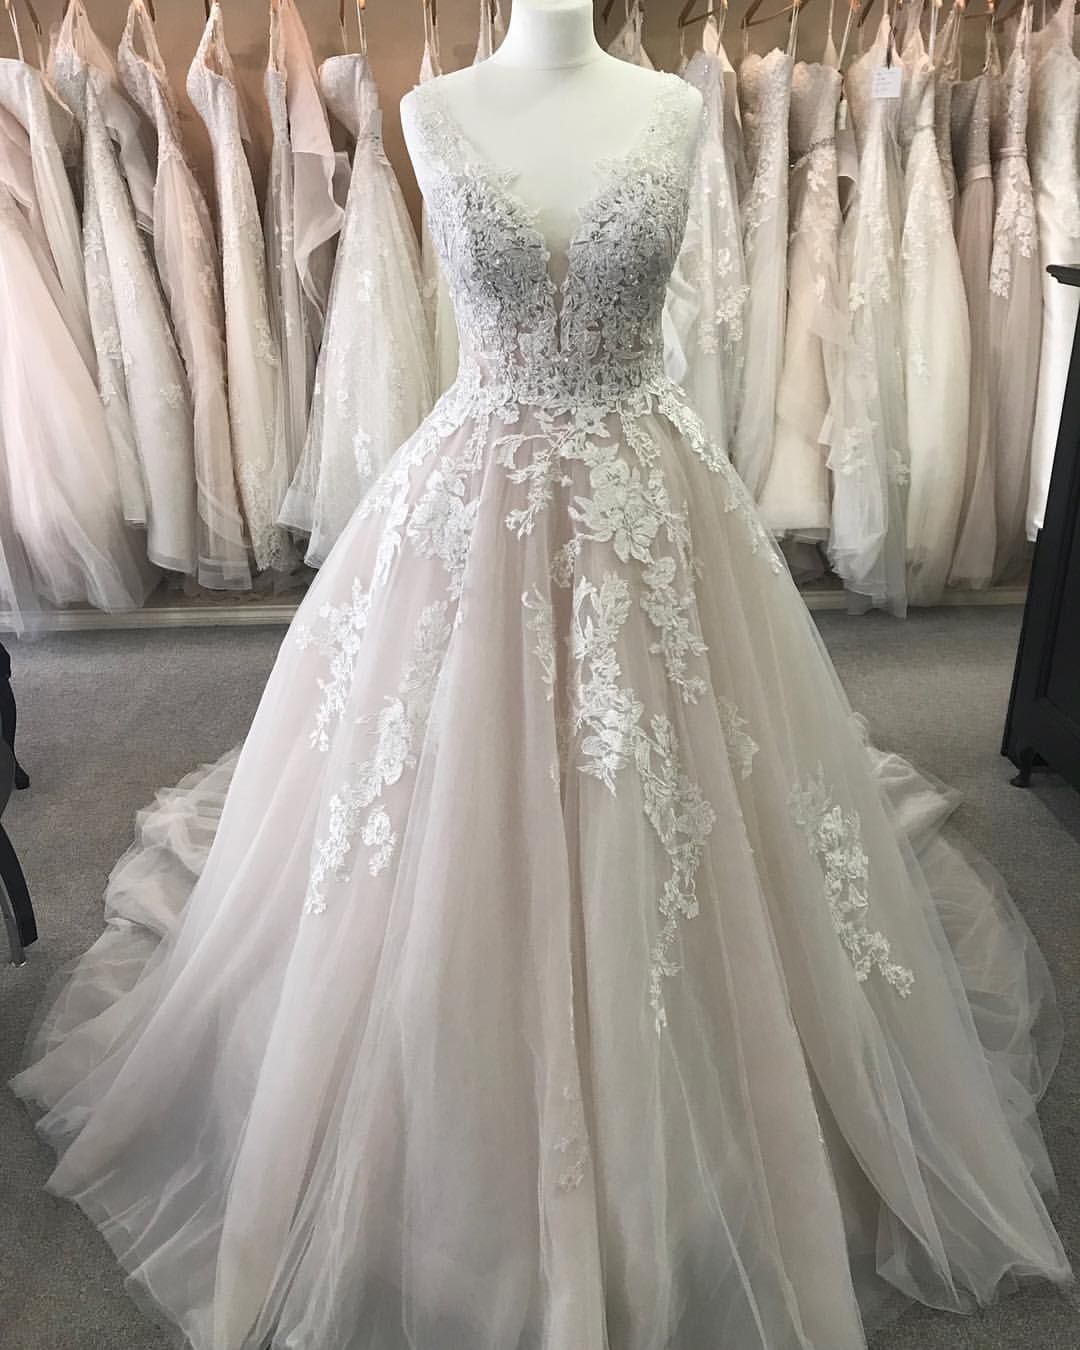 Dreaming of a ball gown that will wow your guests